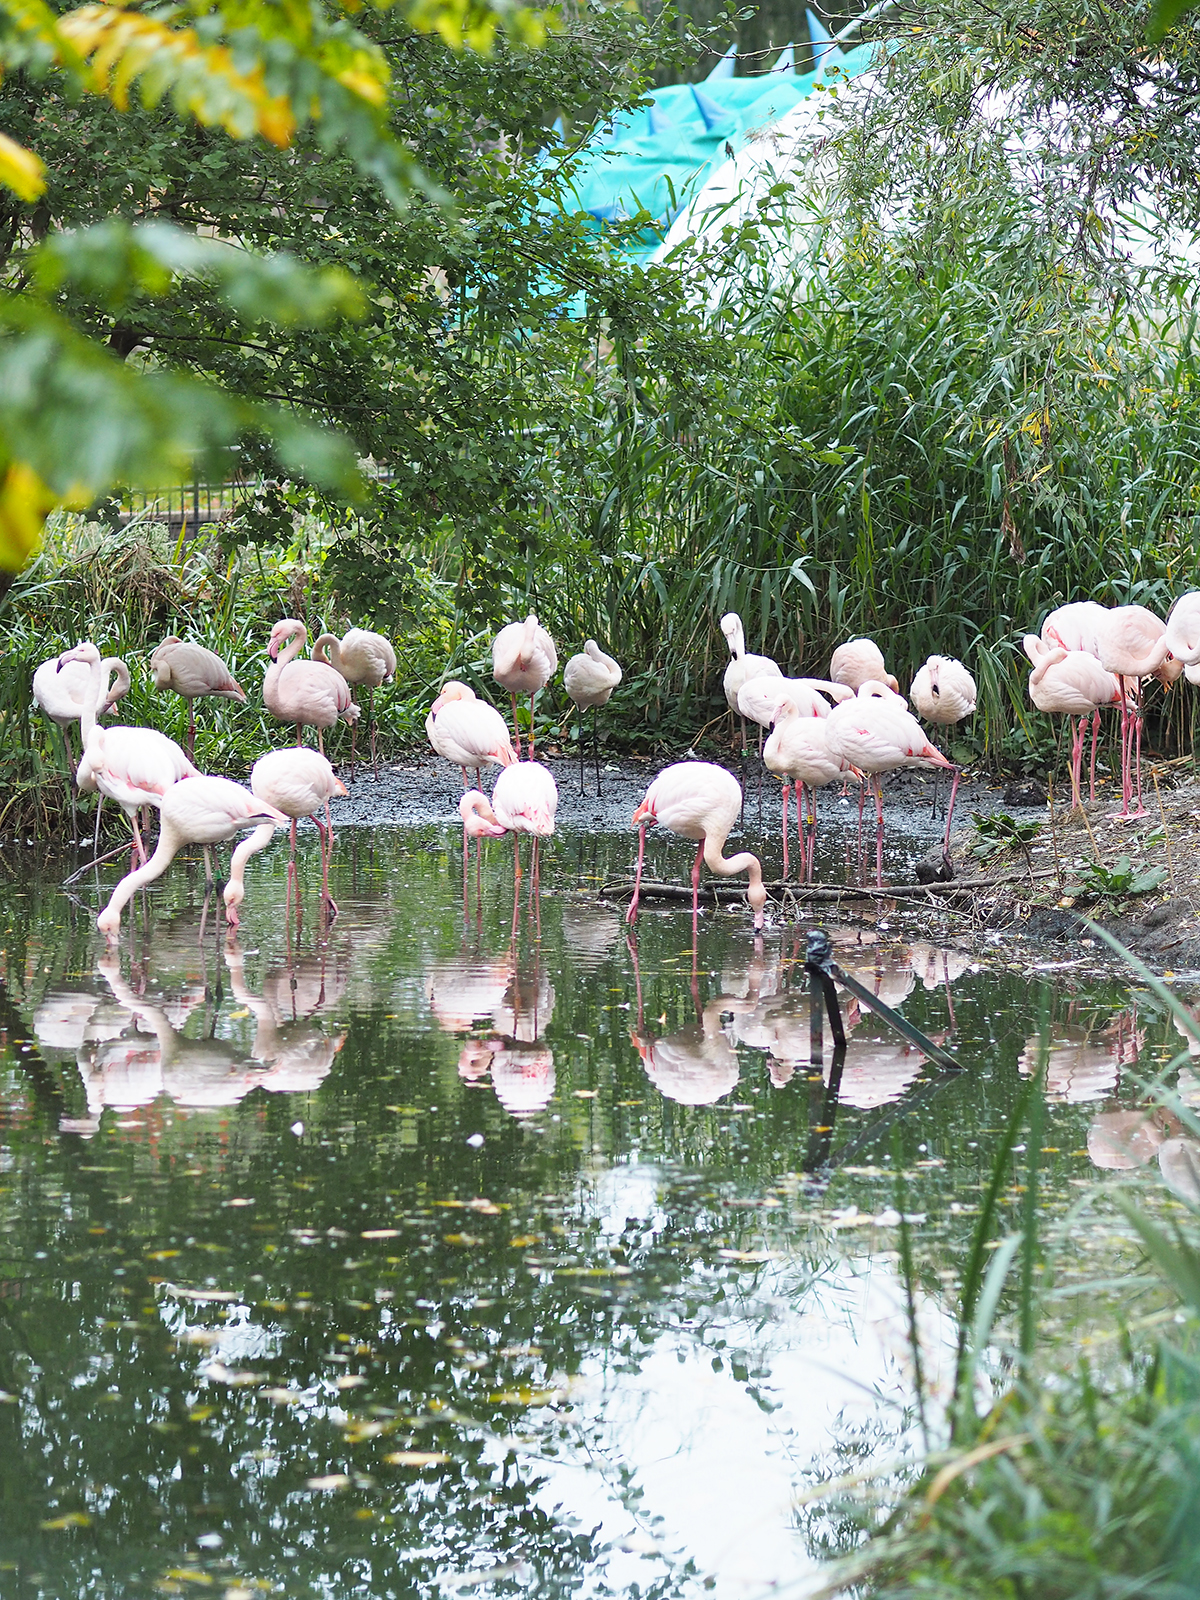 ZSL london zoo flamingos